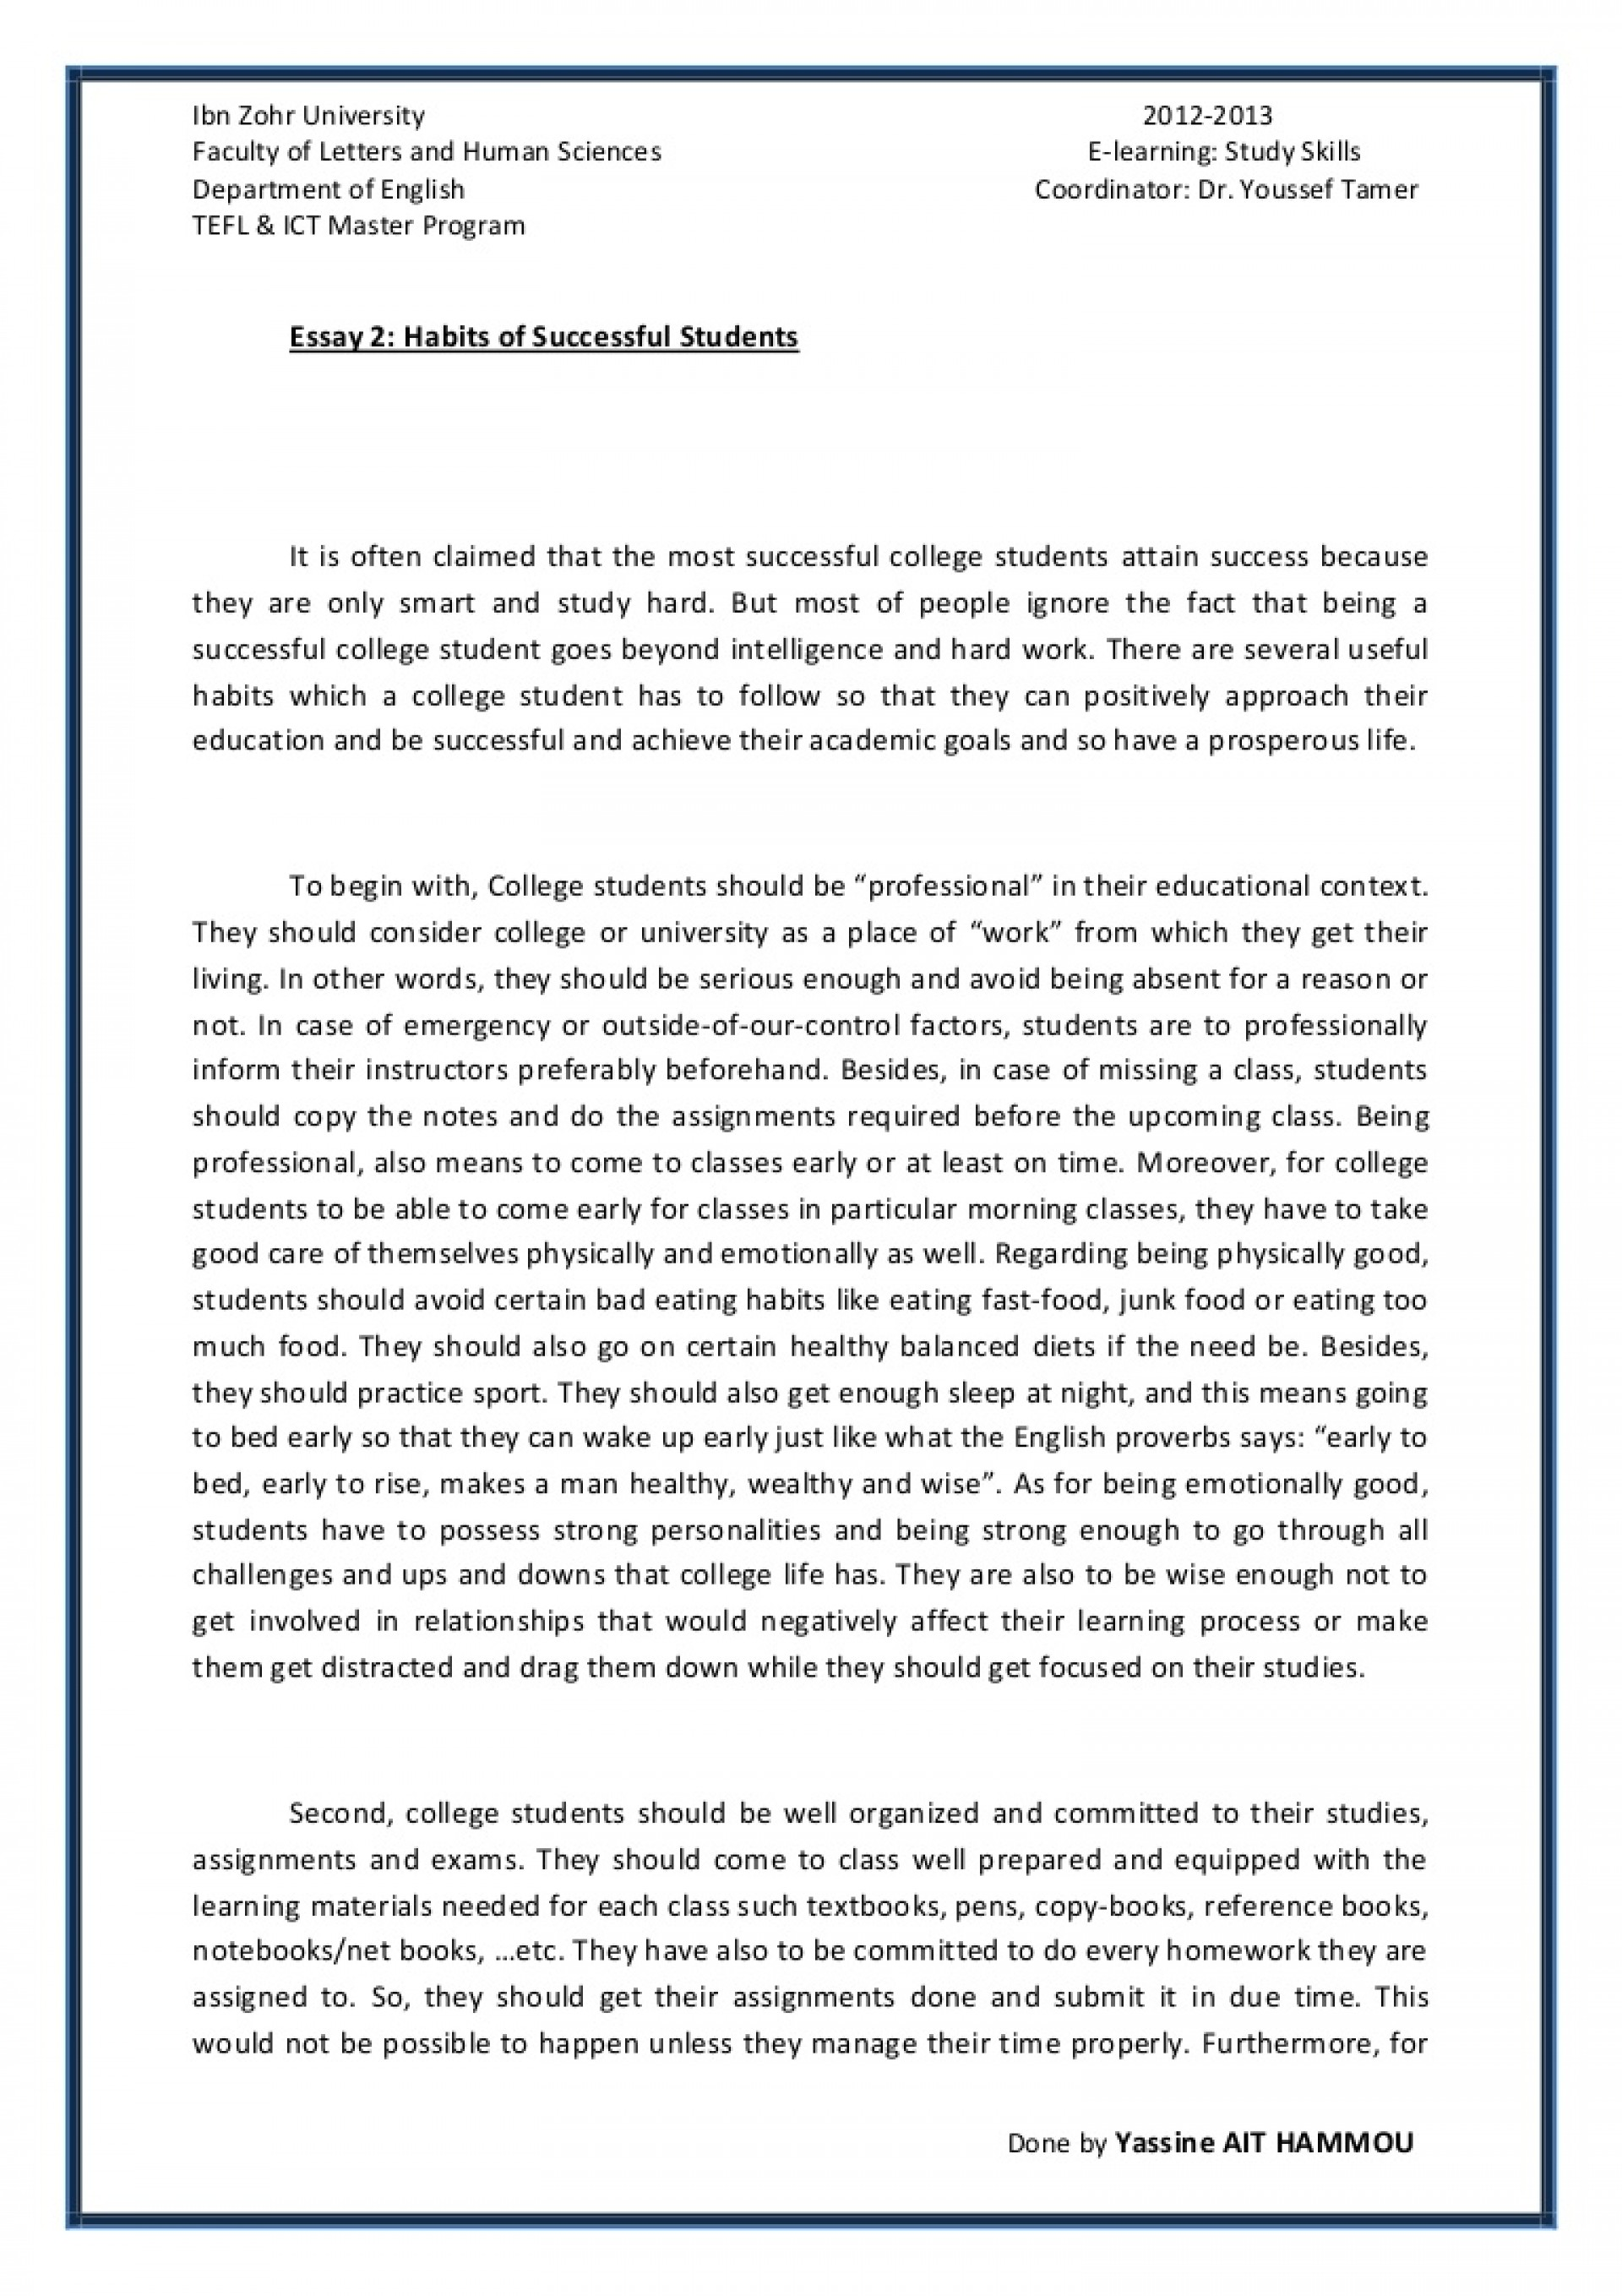 005 Essay About Good Student Essay2 Succesfulcollegestudentshabitsbyyassineaithammou Phpapp01 Thumbnail Rare Qualities Of Students On Ideal In Punjabi Definition 1920